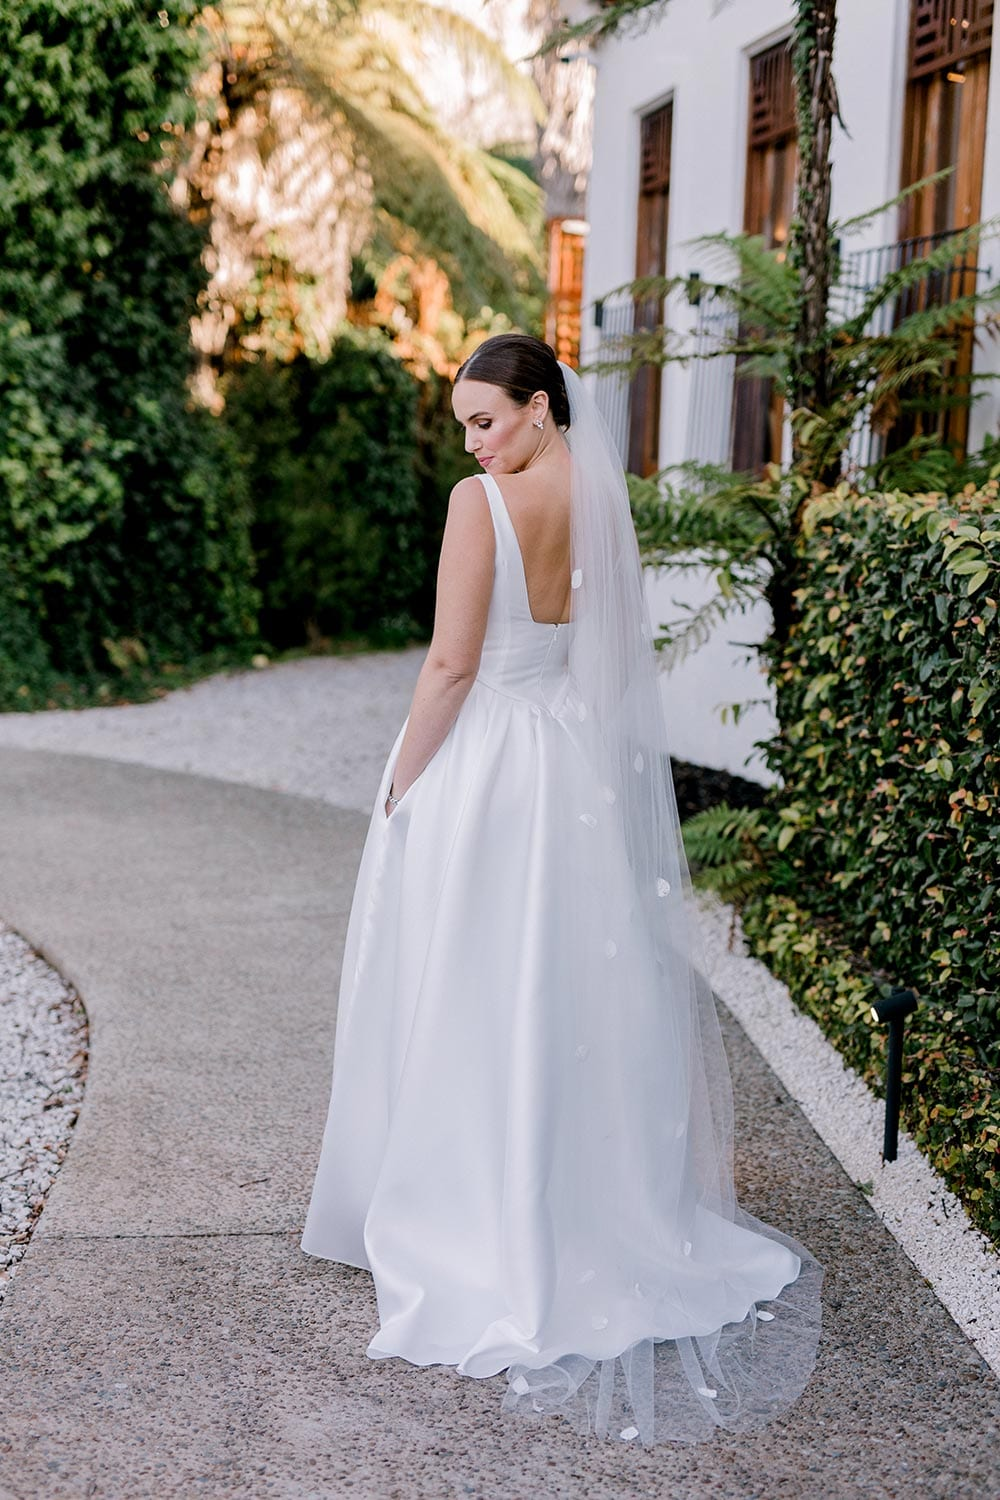 Madison Wedding Dress from Vinka Design. Classic Mikado satin wedding dress. Structured bodice with deep V-neckline & low back. Side pockets in the skirt give fun & versatility, with a sweeping train. View of gown from the back. Photographed outdoors.